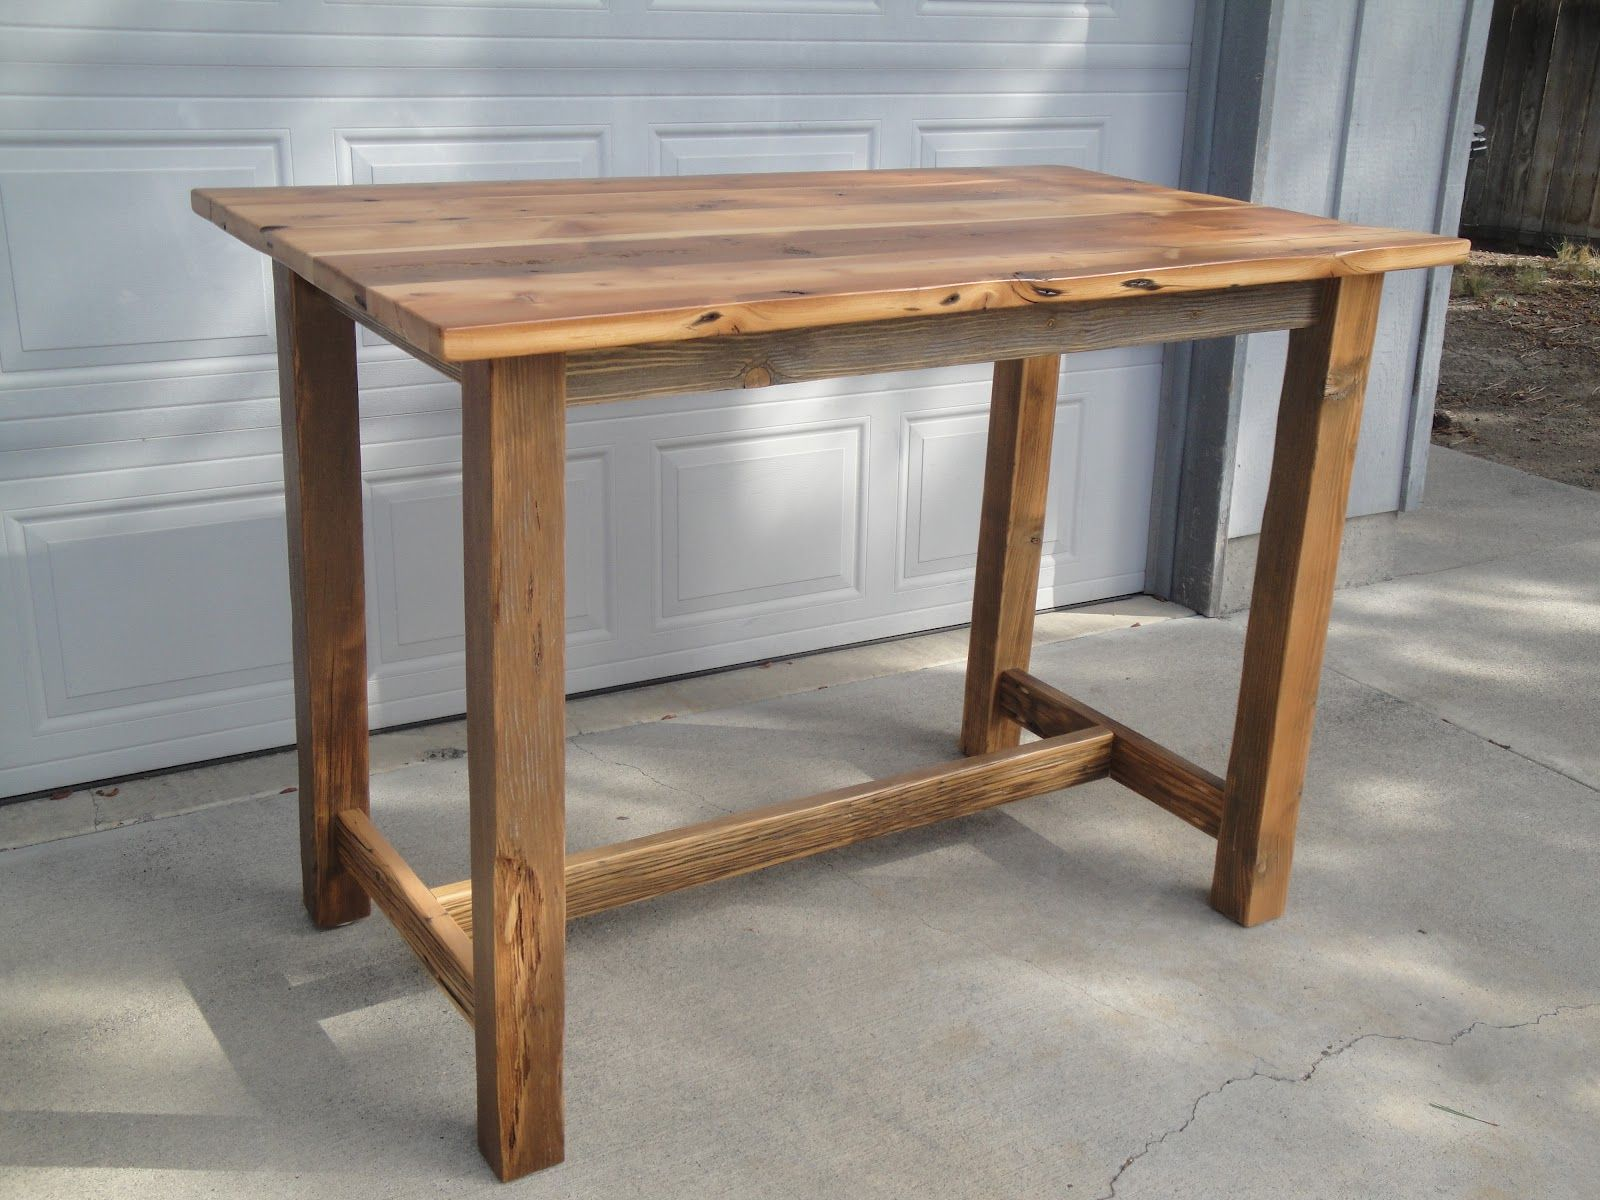 bar height table dimension   Google Search. bar height table dimension   Google Search   Work Space